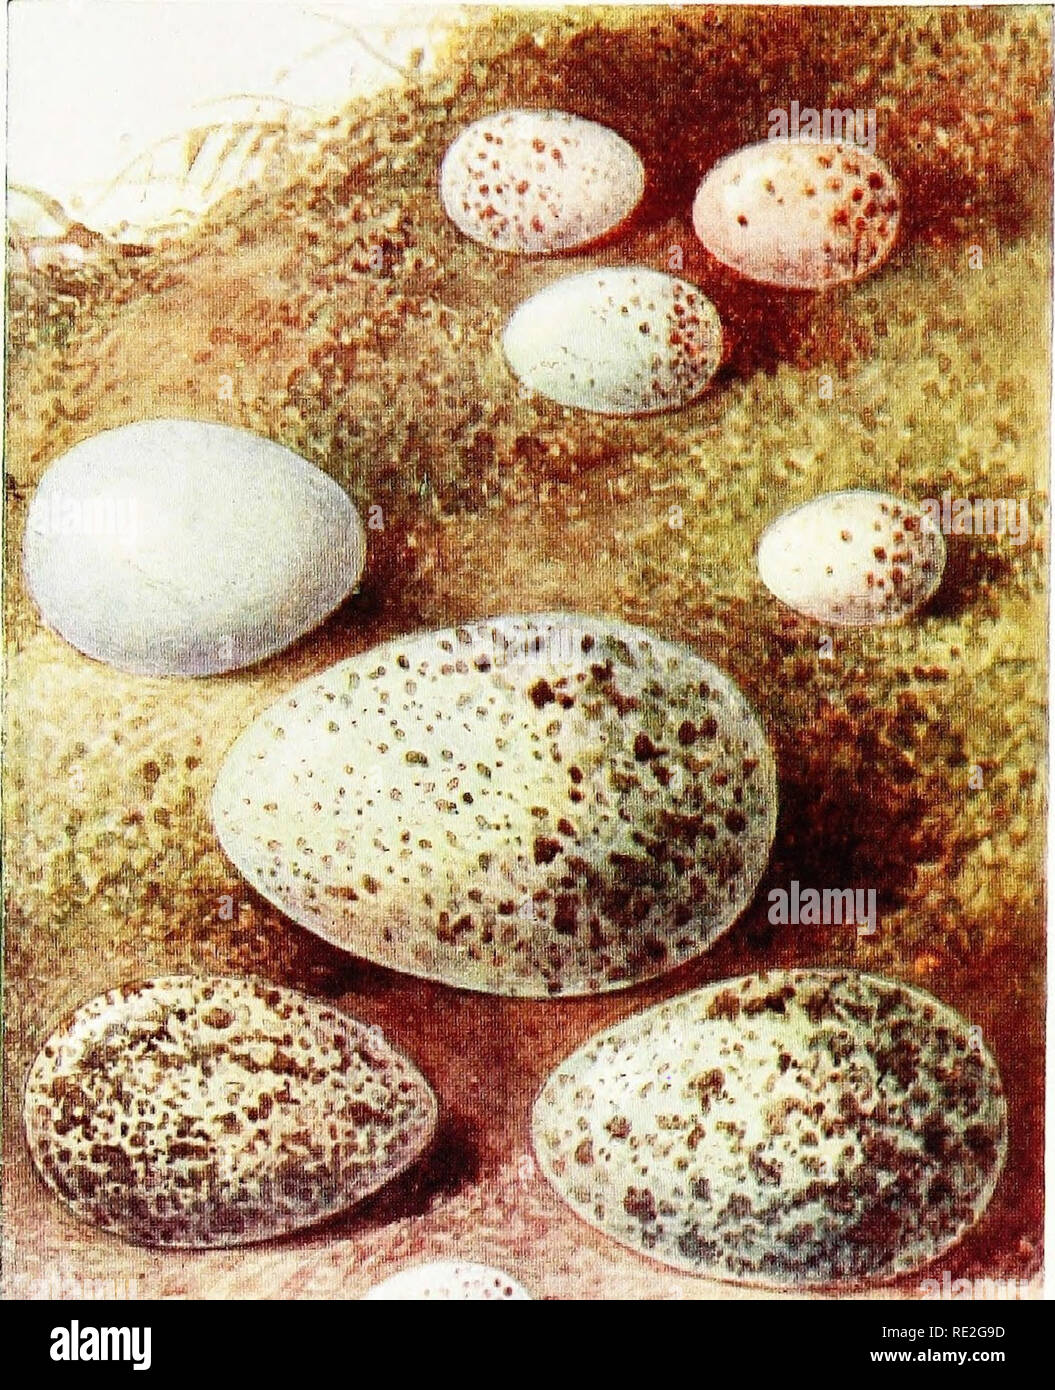 Chaffinch Eggs Stock Photos Chaffinch Eggs Stock Images